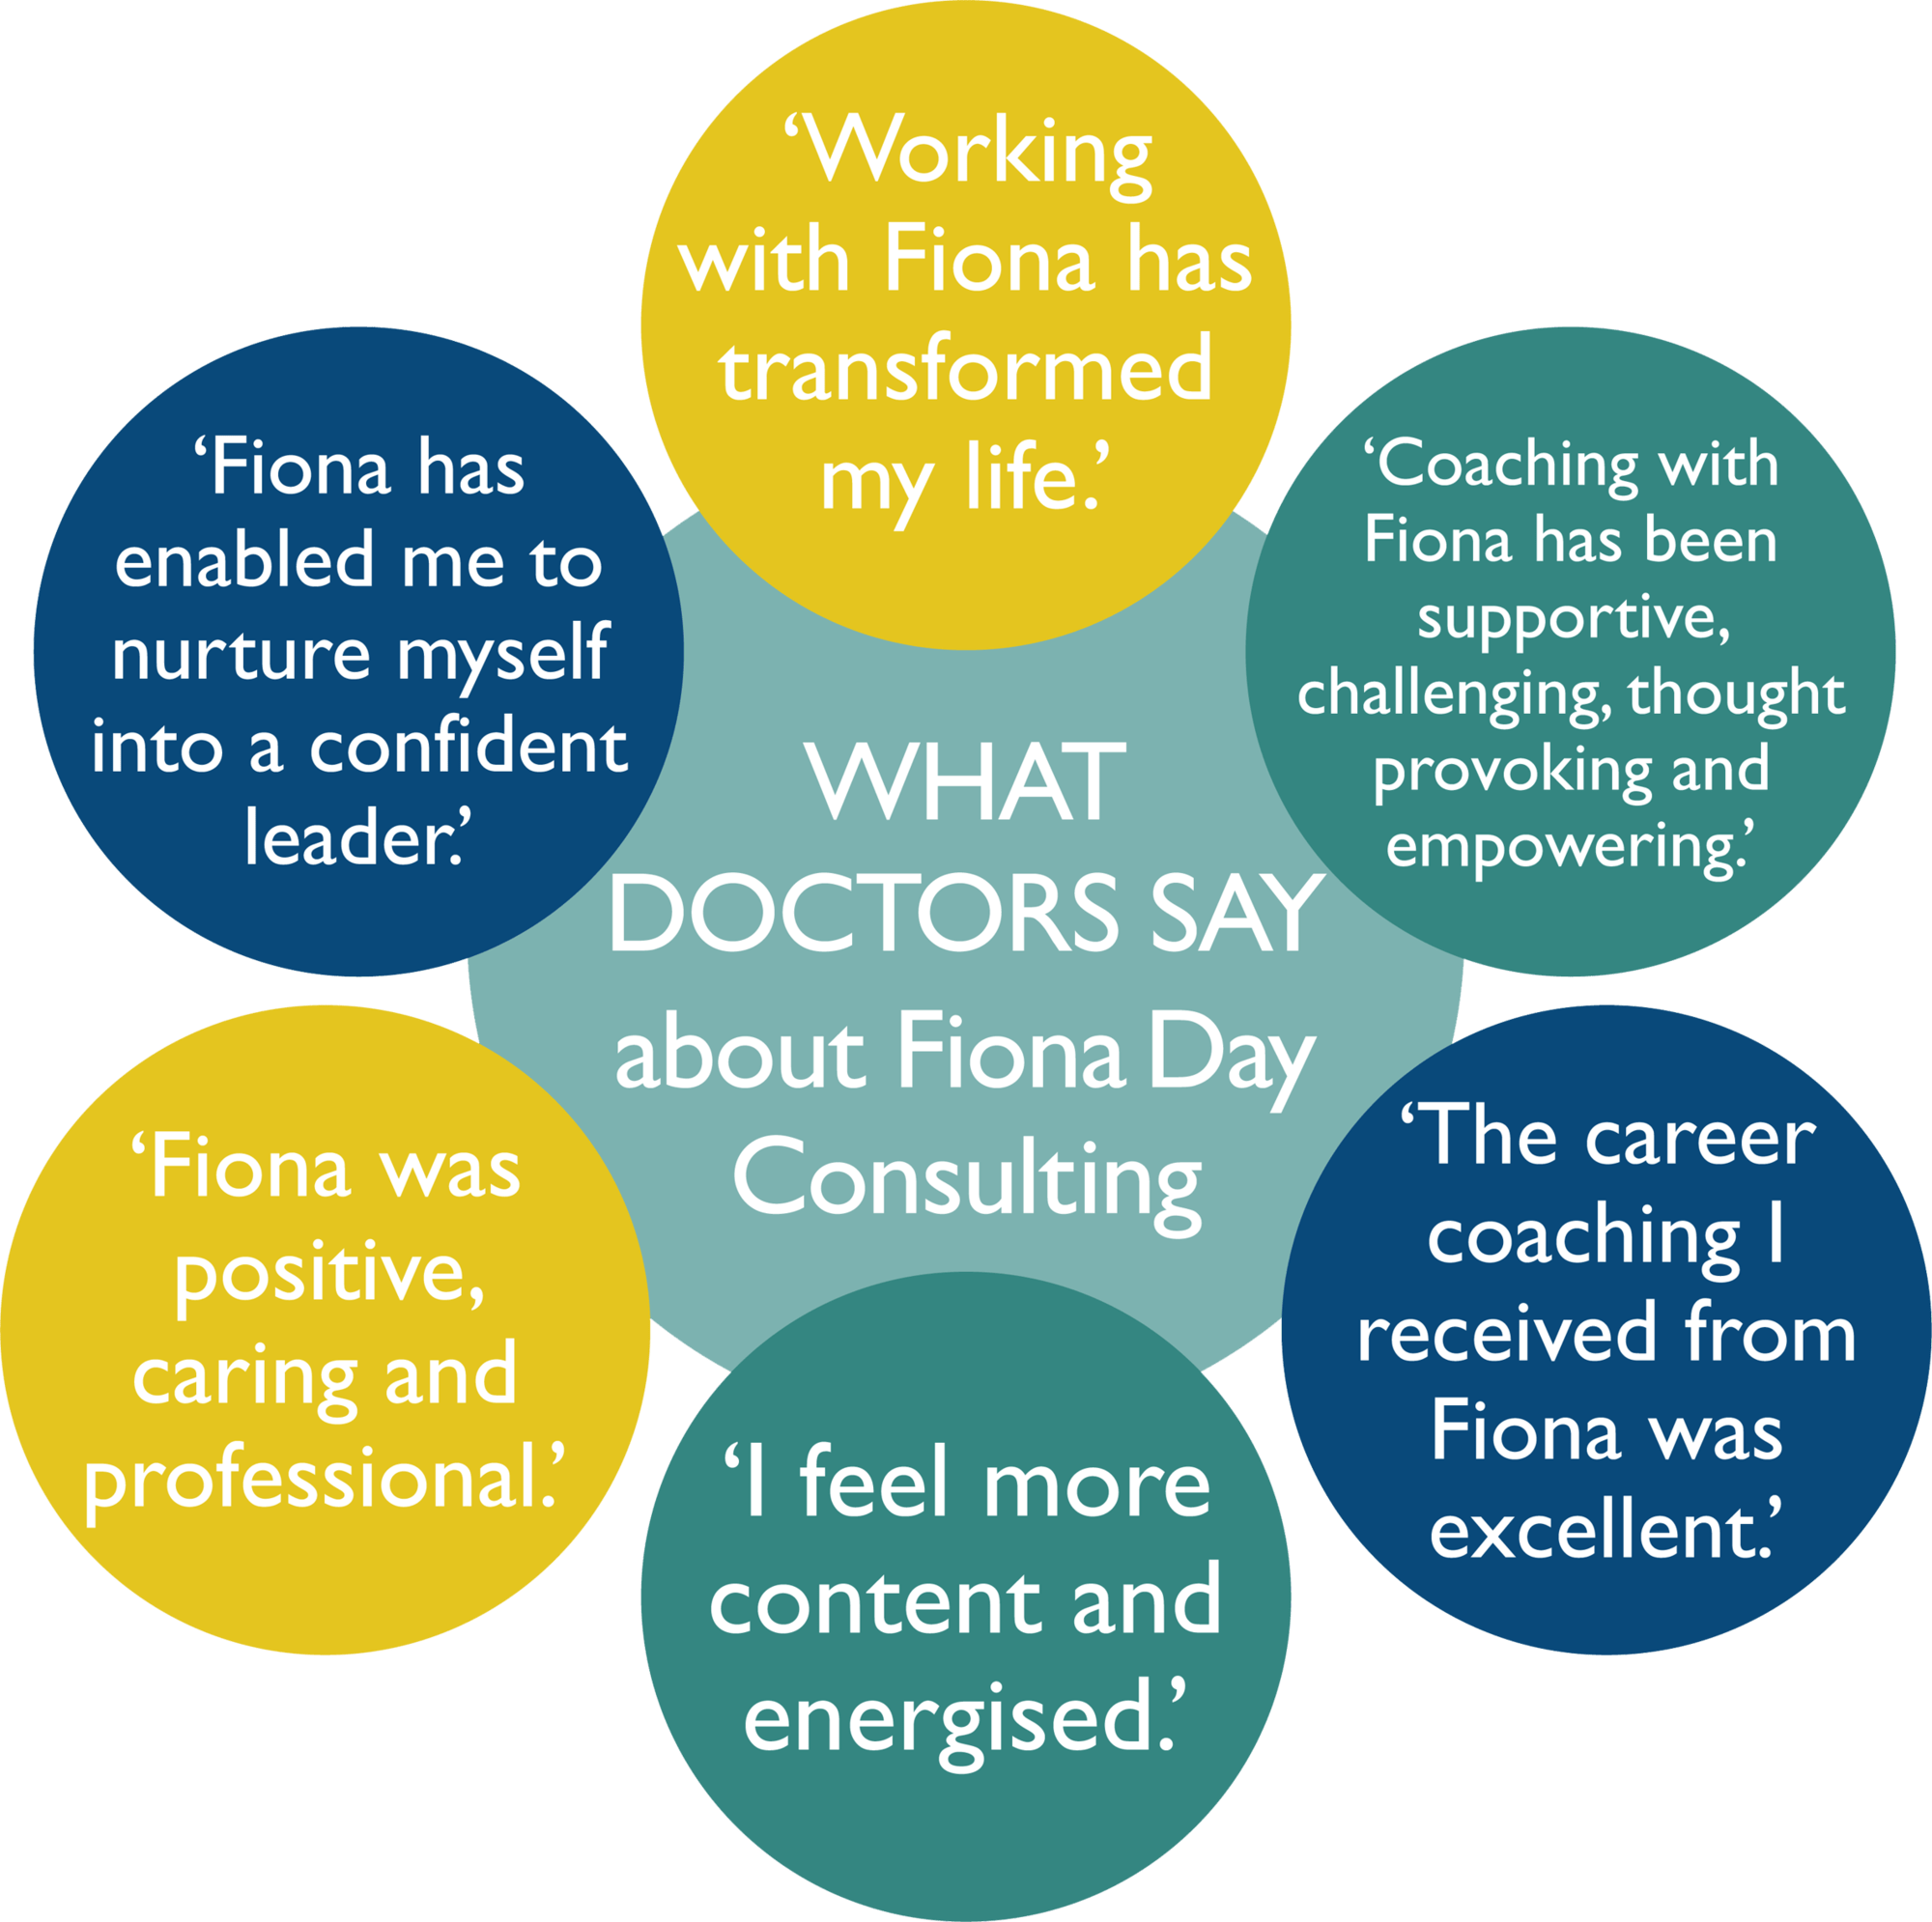 medical coaching infographic